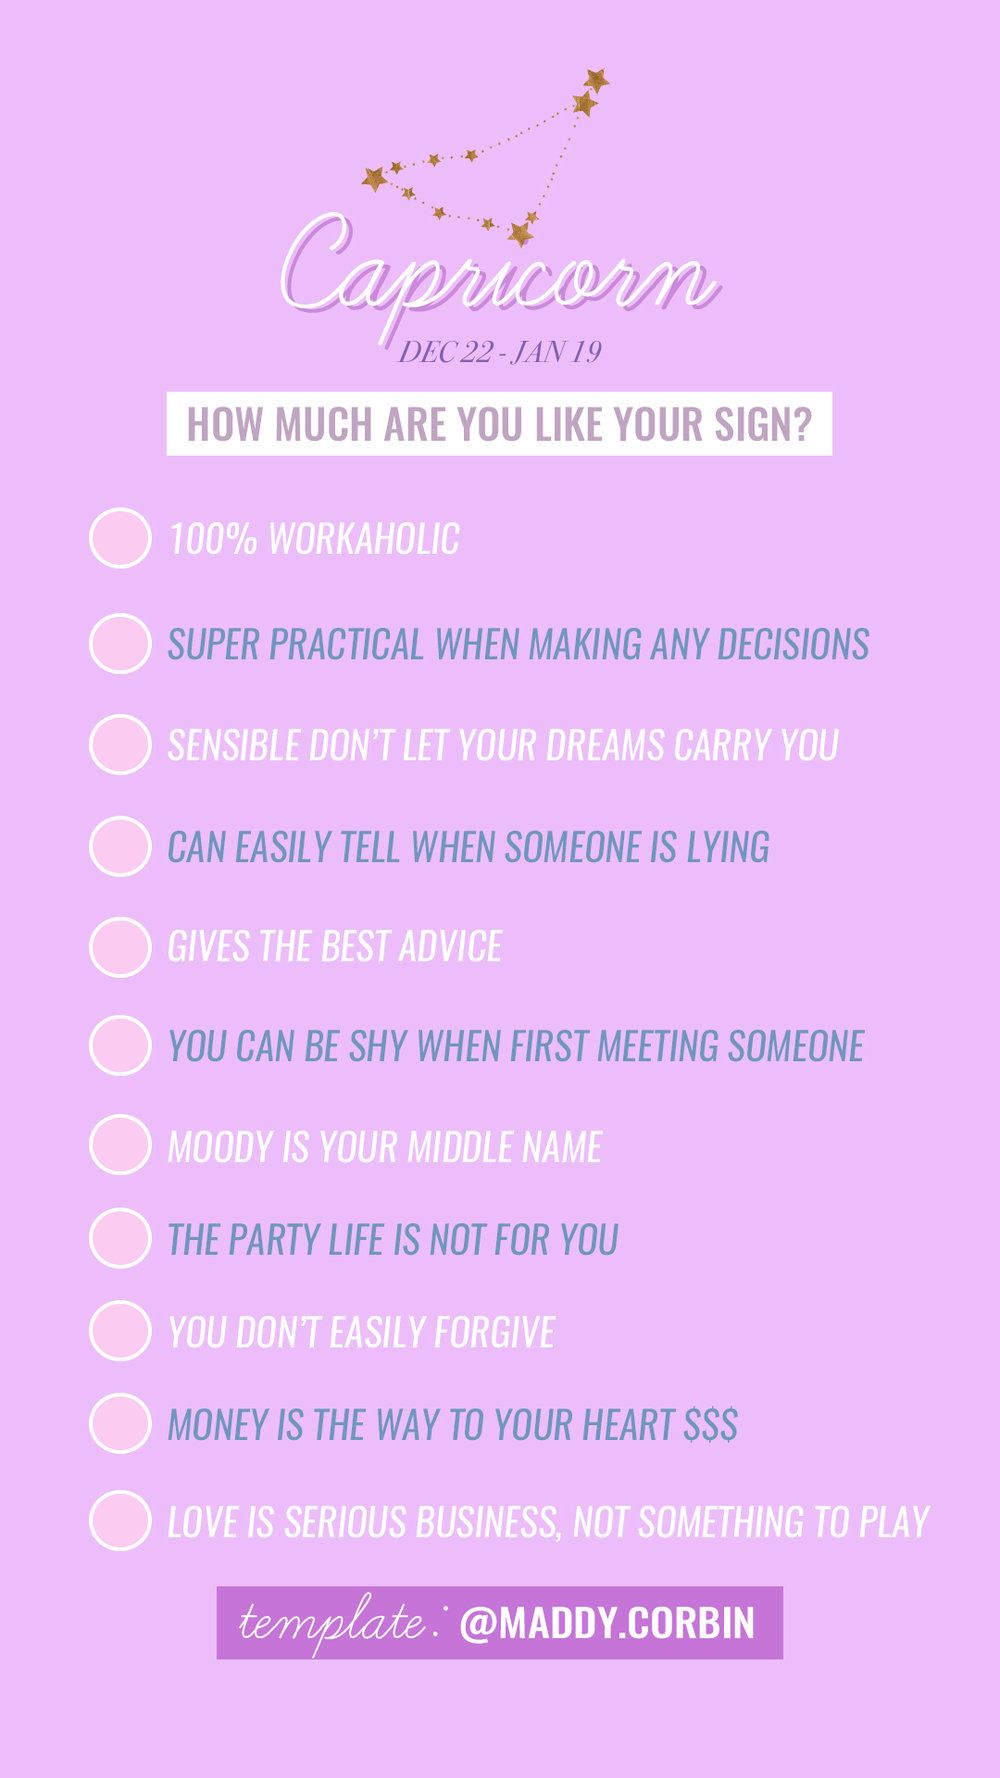 Instagram Story Template By Maddy Corbin How Much Are You Like